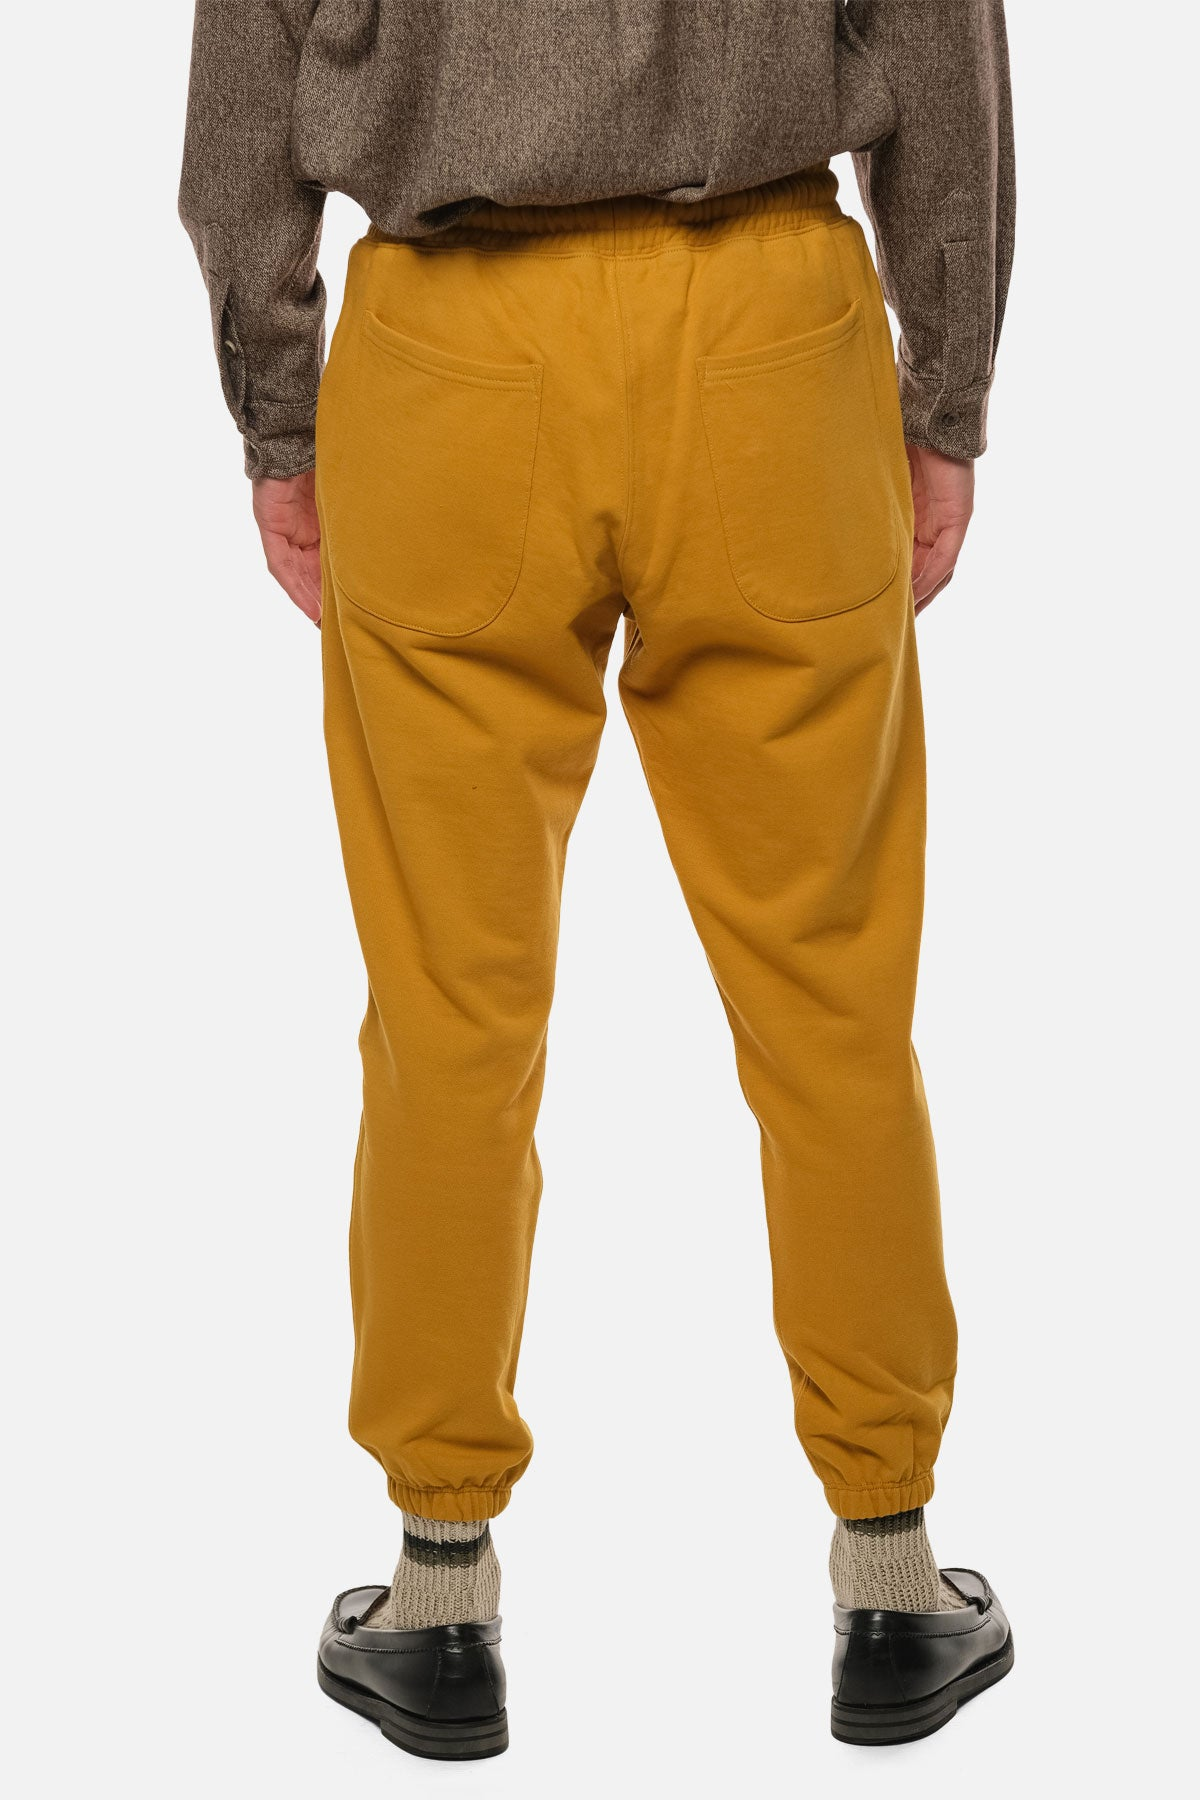 MORTON AVE PANT IN GOLD - Fortune Goods